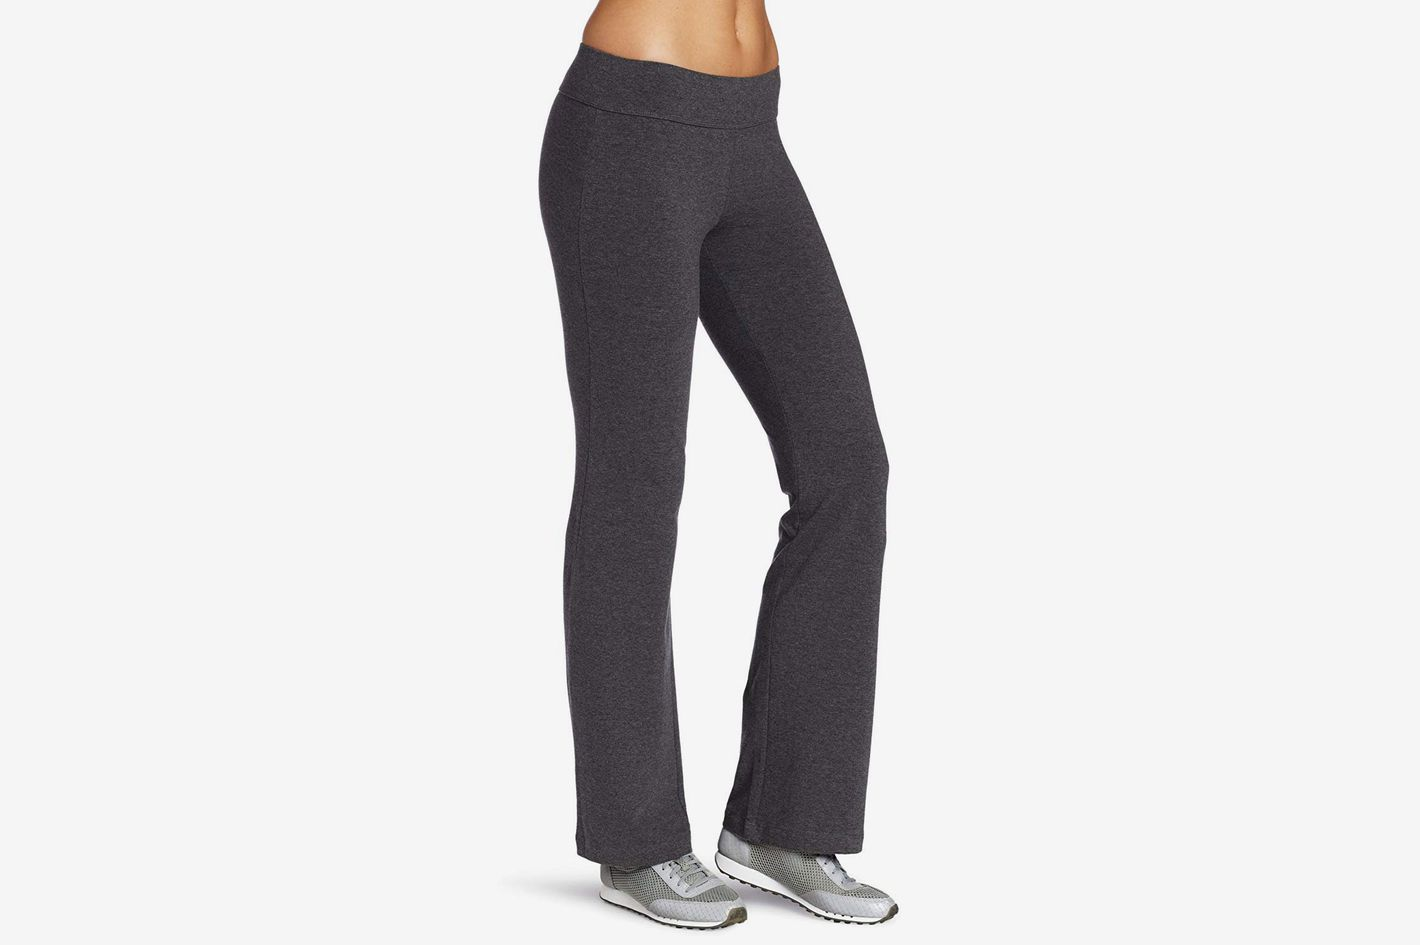 9bc2f571abb The 20 Best Yoga Pants for Women 2019